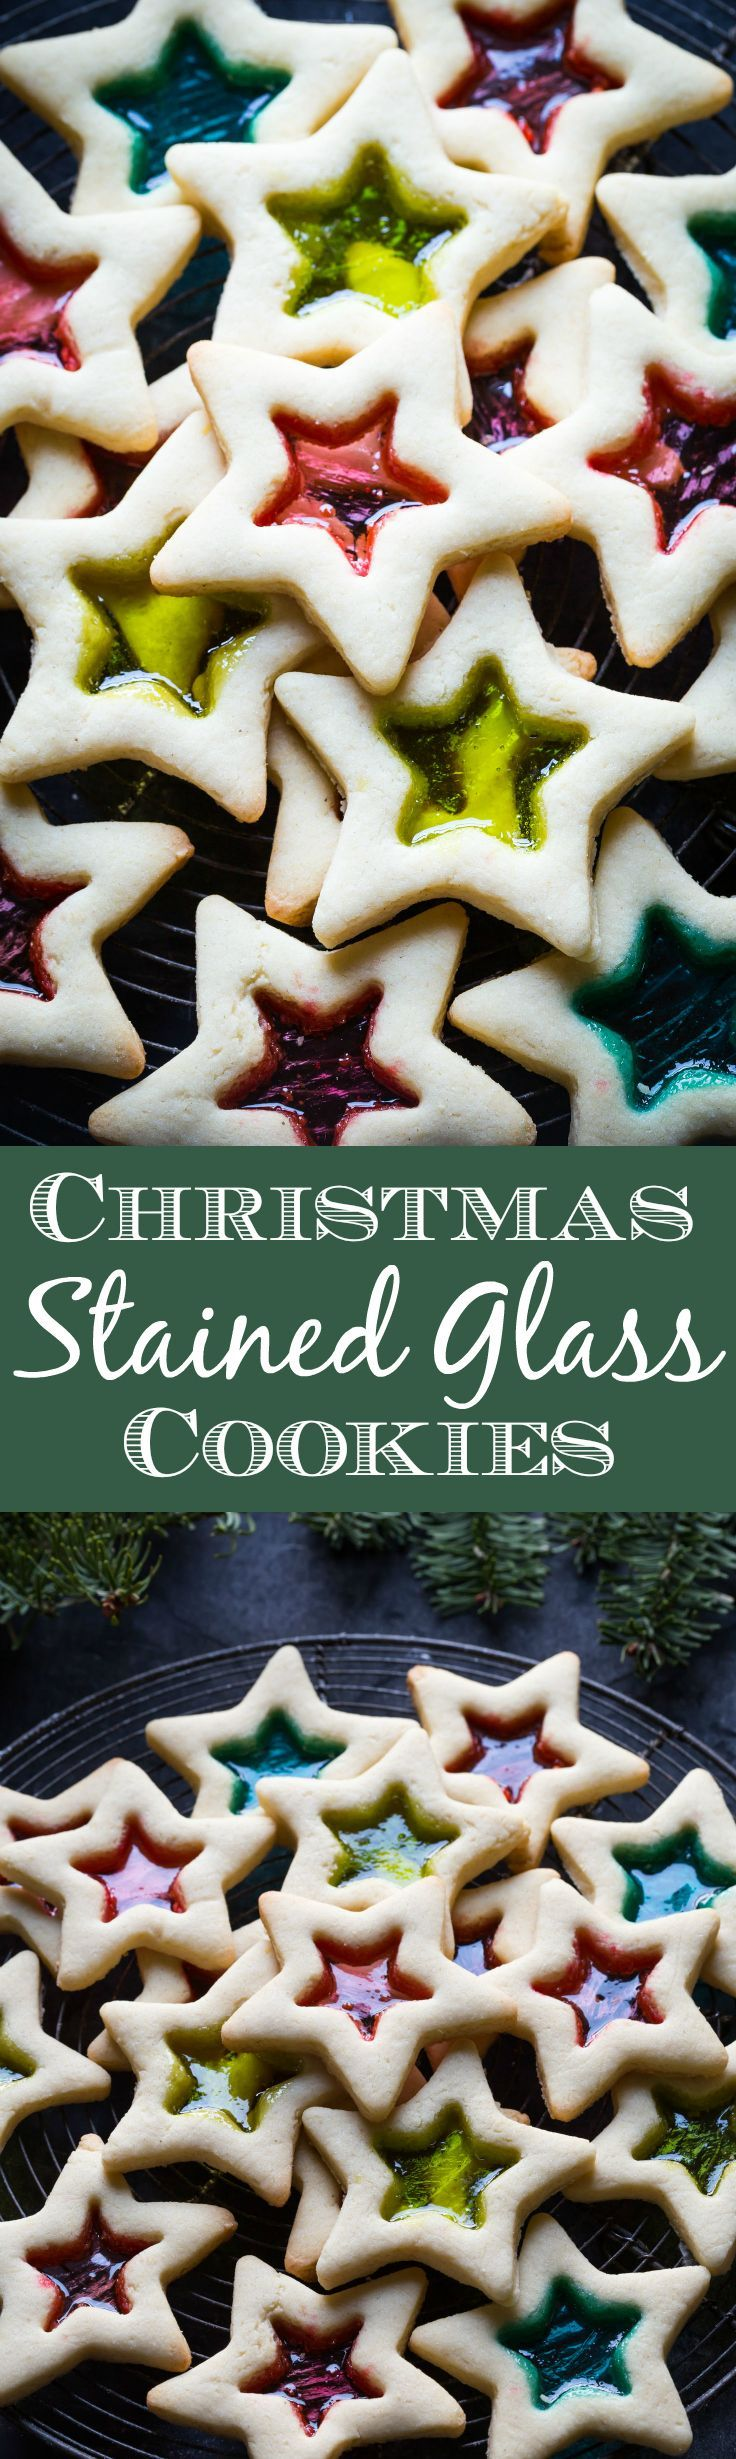 Simply gorgeous Gluten Free Christmas Cookies with Stained Glass. You can can make these with your kids, they are SO easy!                                                                                                                                                                                 More